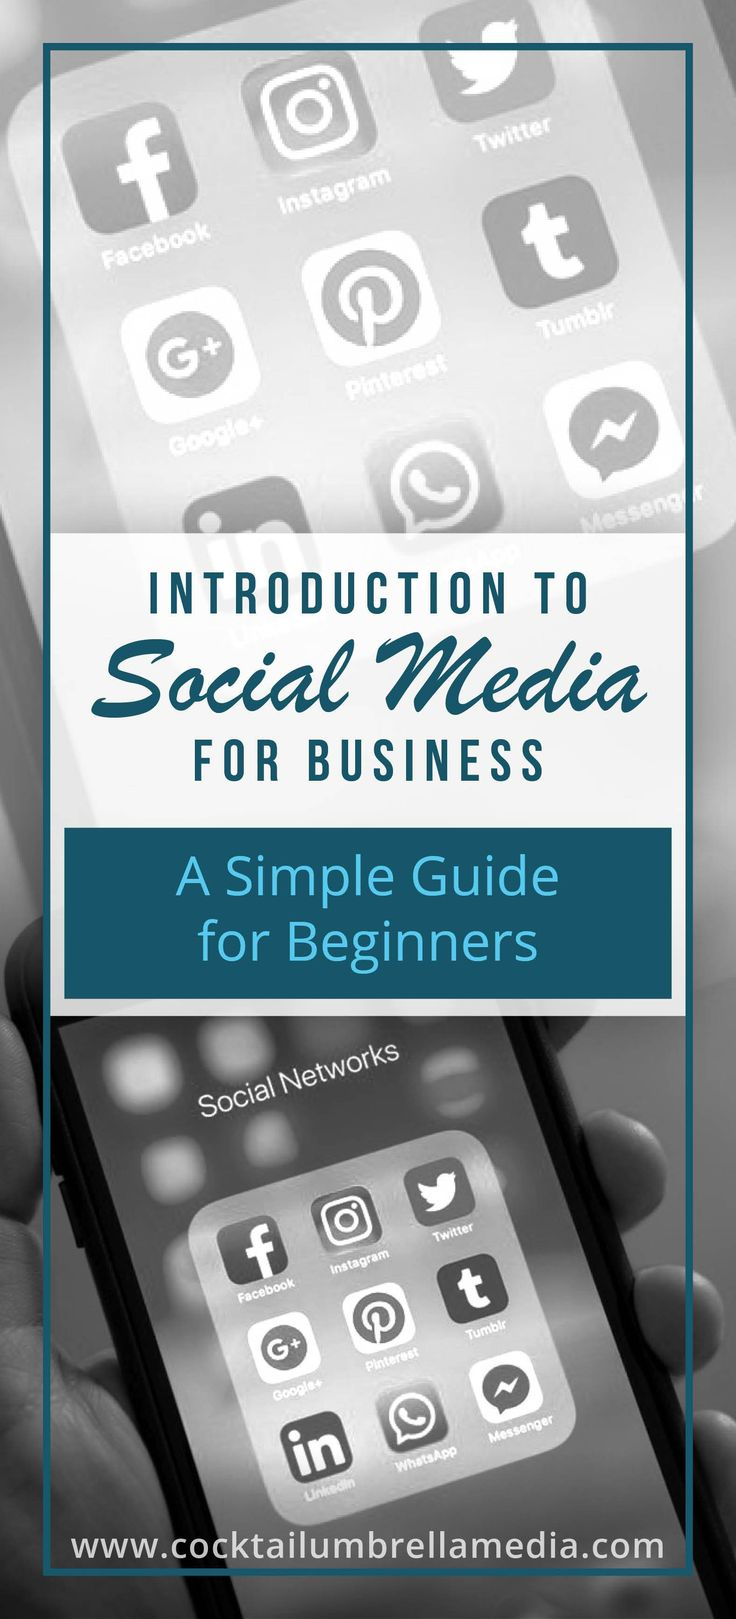 Introduction To Social Media For Business: A Simple Guide For Beginners - Cocktail Umbrella Media